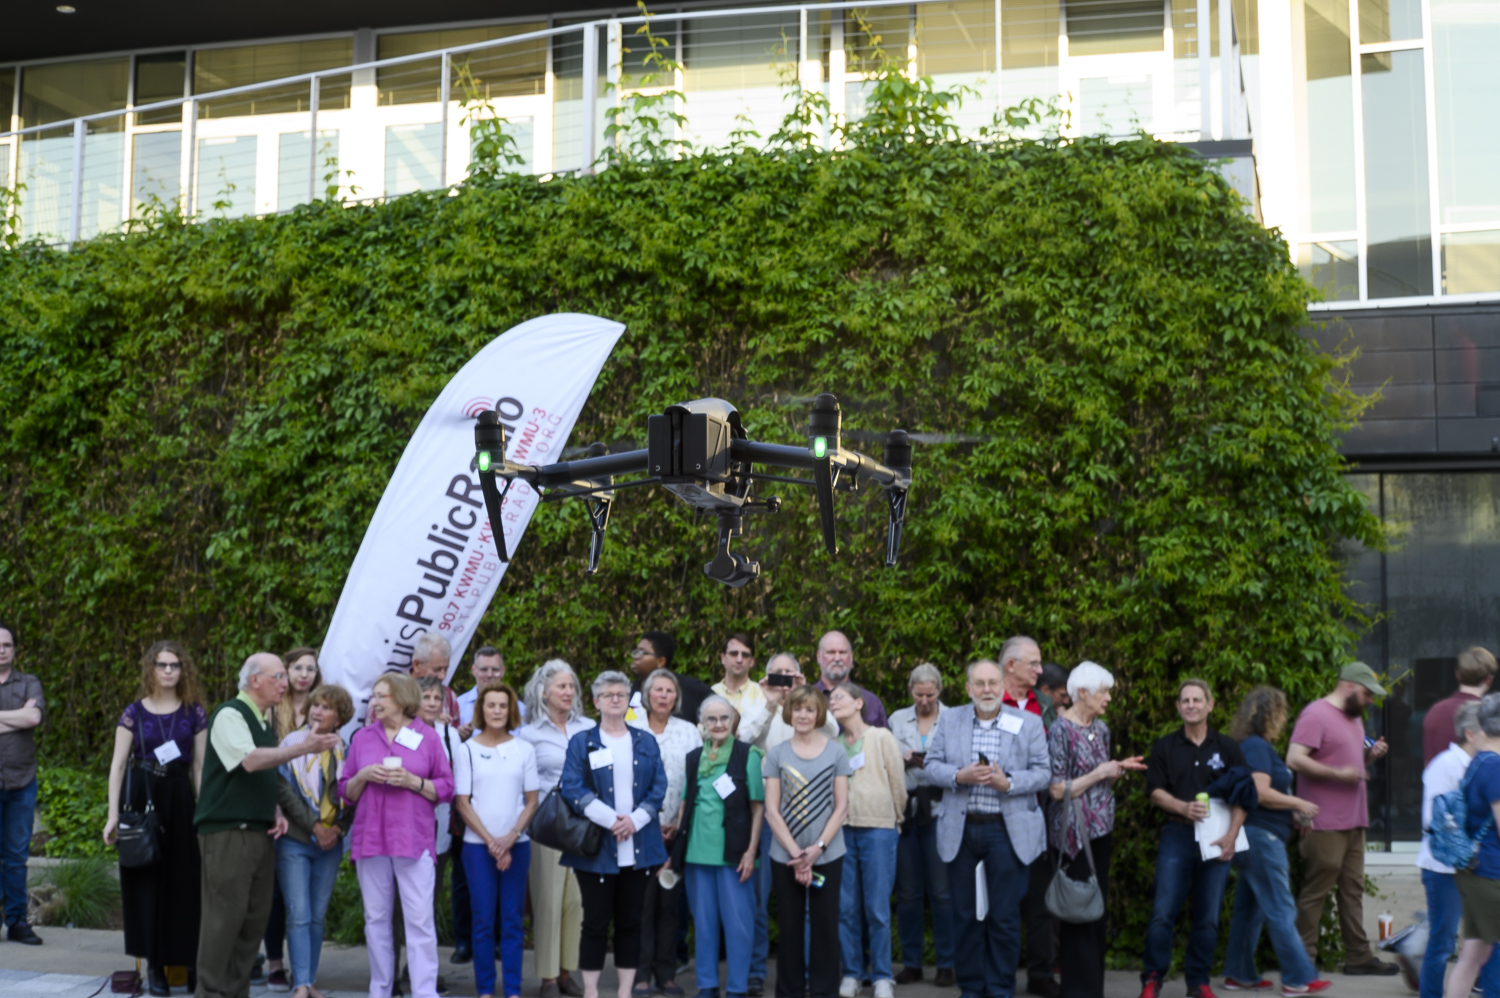 A drone flies in the middle of the photo. Attendees can be seen watching it.